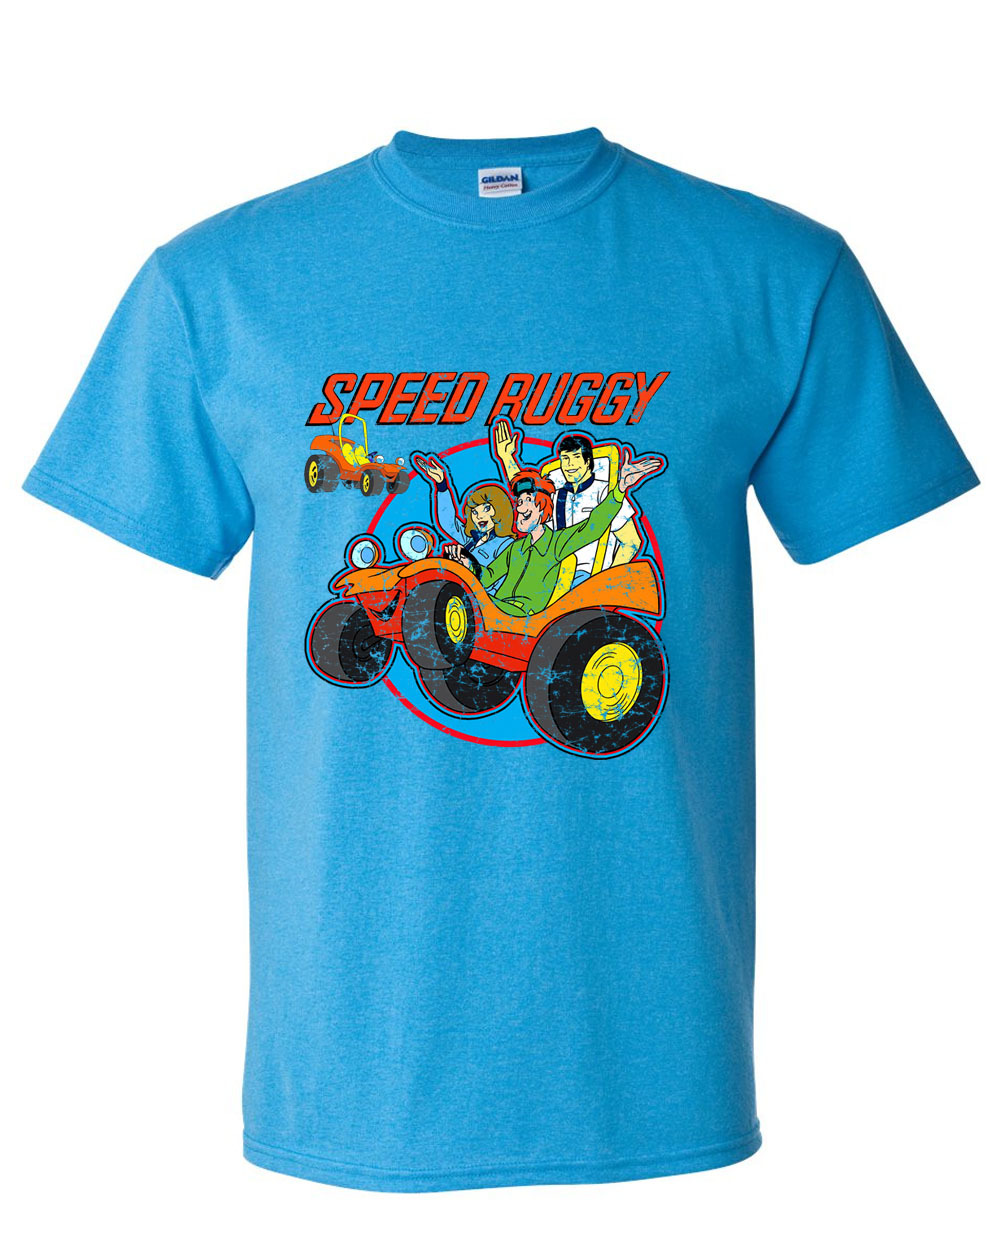 Raphic tee store scooby doo saturday morning cartoons  1970s jabber jaw josie and the pussy cats